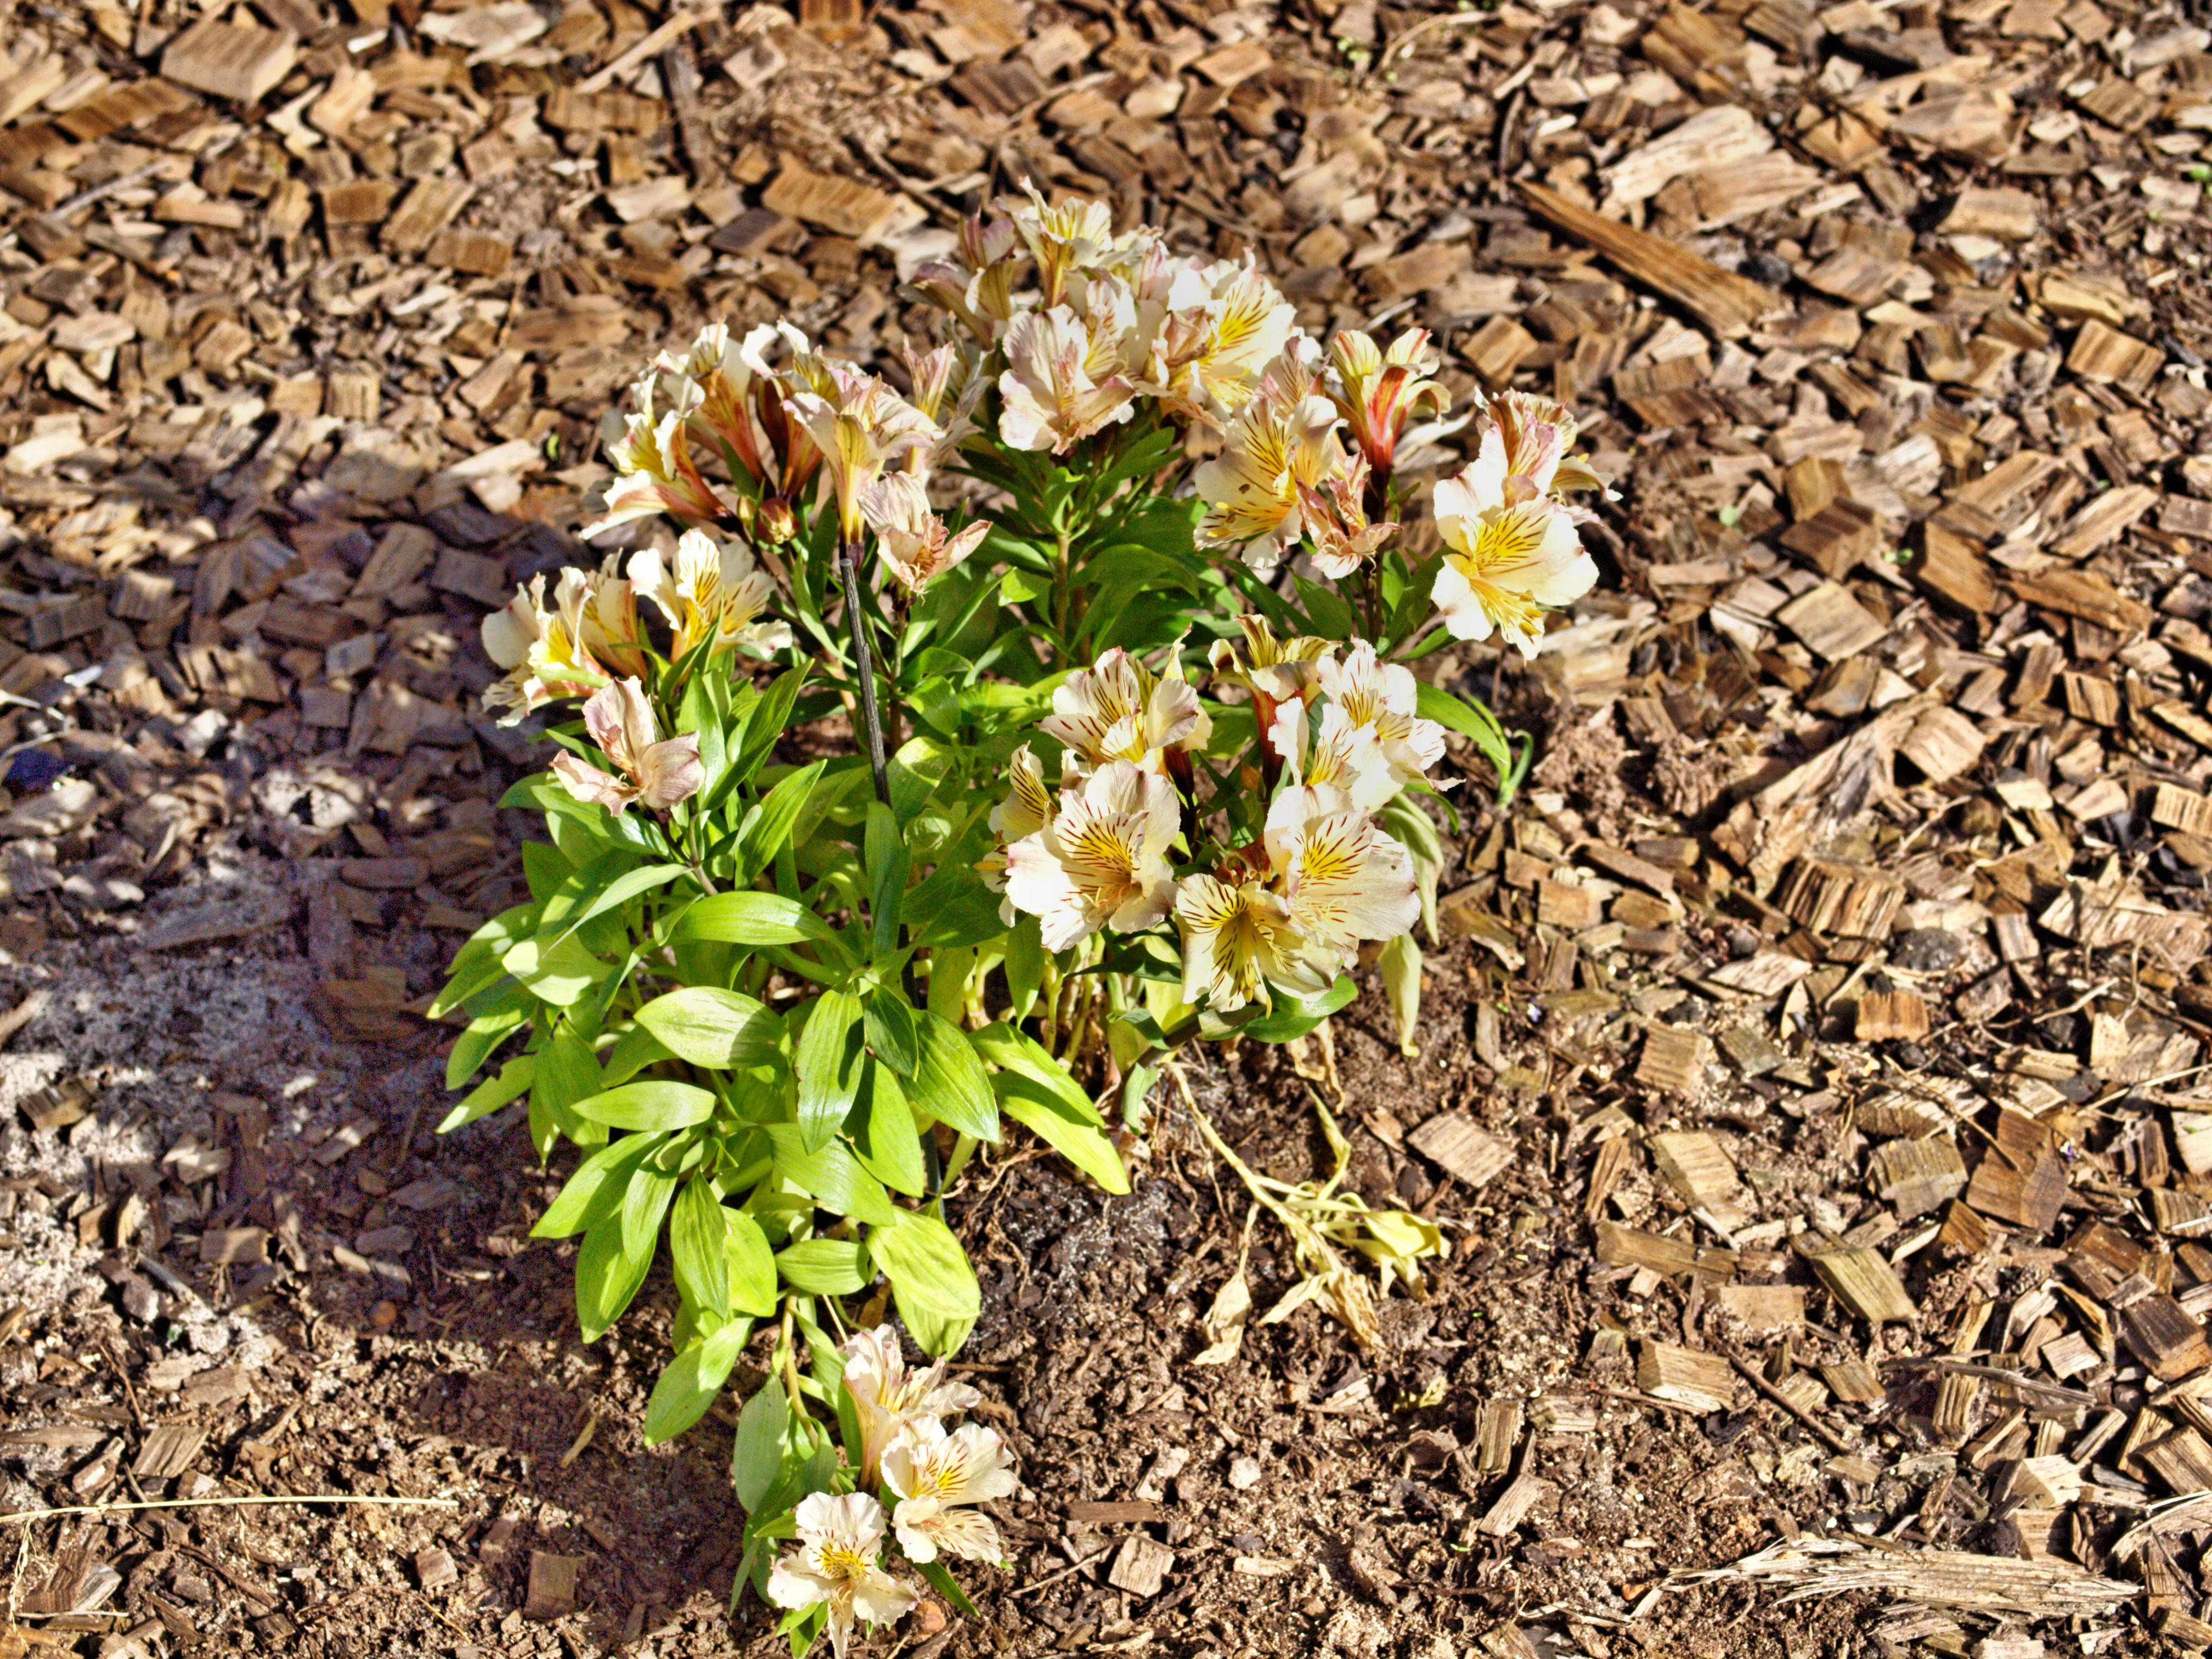 This should be Alstroemeria-4.jpeg.  Is it missing?